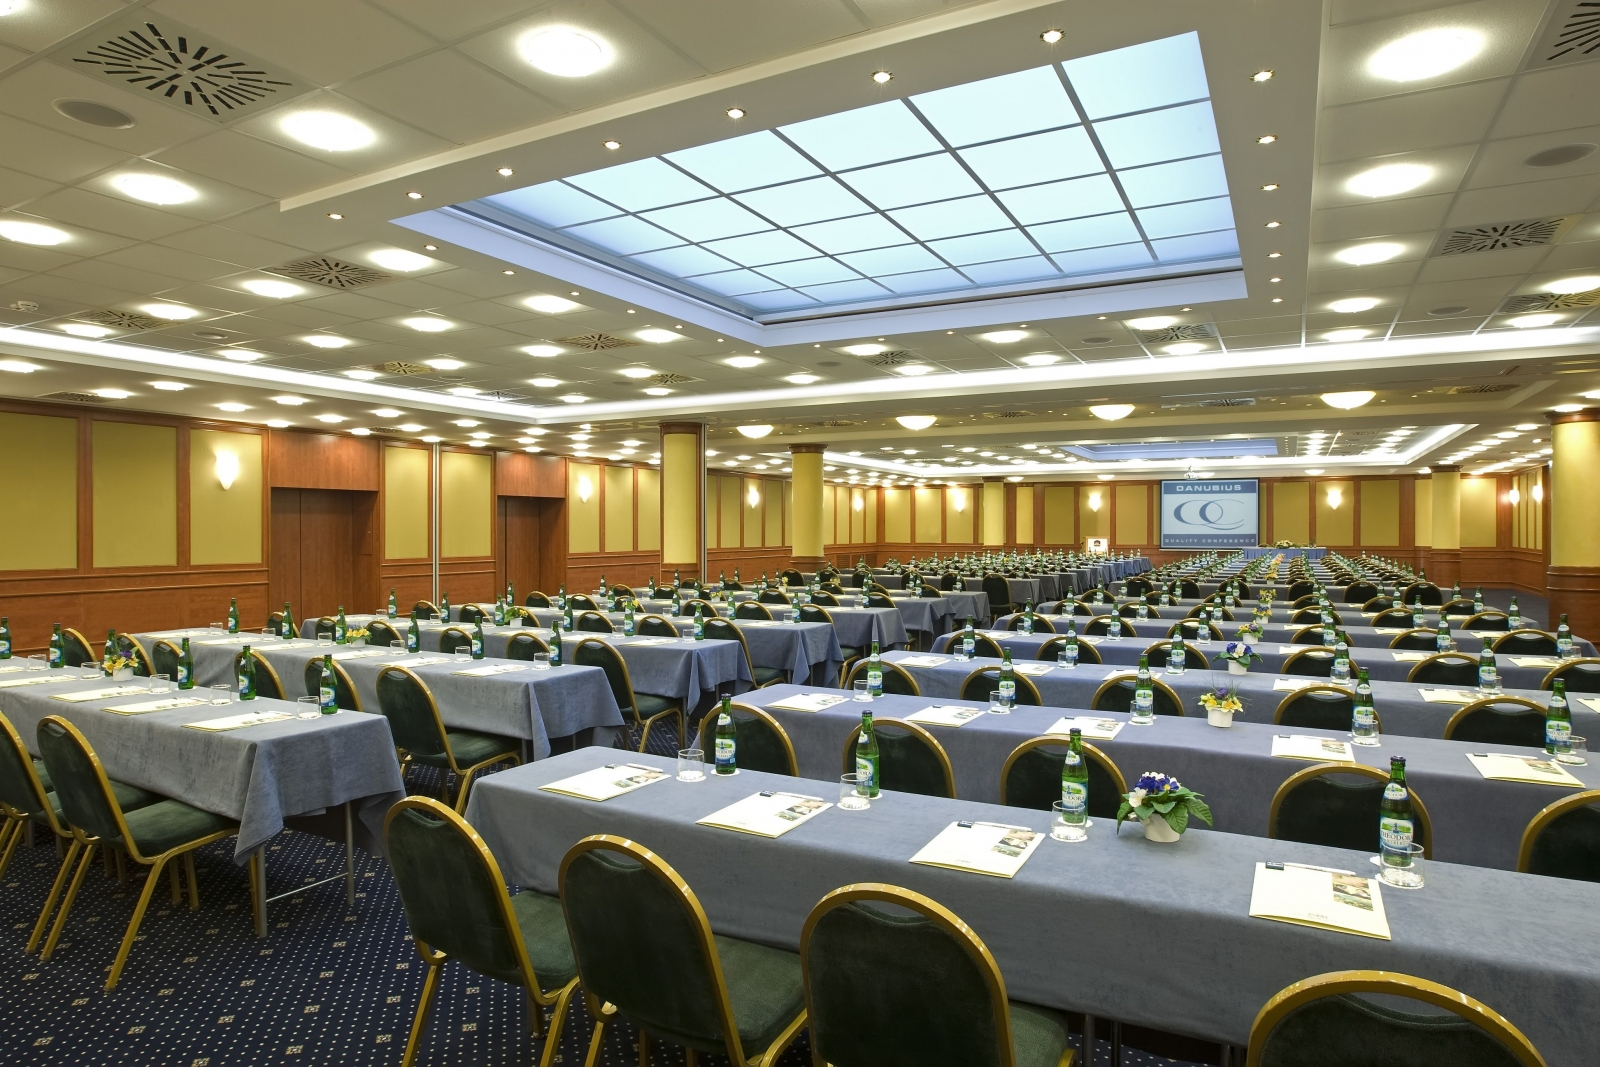 Conference+room+ - Hotel+Hungaria+City+Center - hotel Budapest